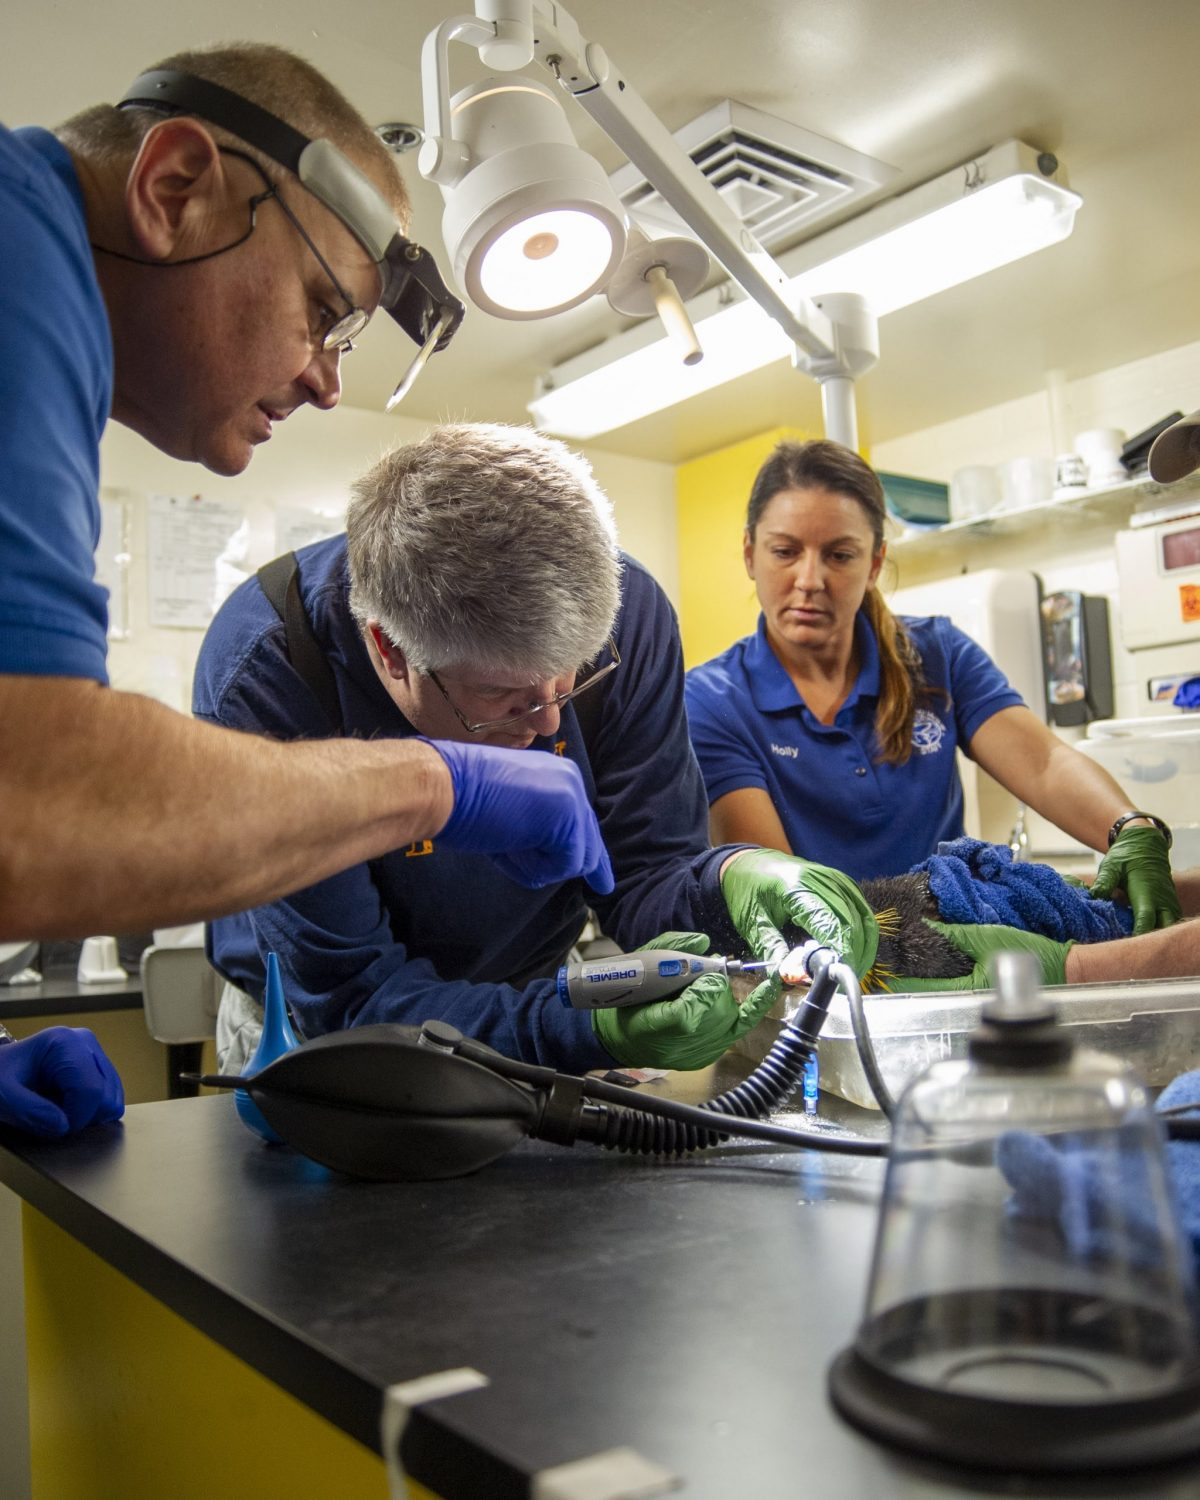 Chattanooga dentist Dr. Ernie Minges, Tennessee aquarium staff veterinarian Dr. Chris Keller and Senior Care Specialist Holly Gibson perform a surgical procedure to repair a penguin's injured beak.